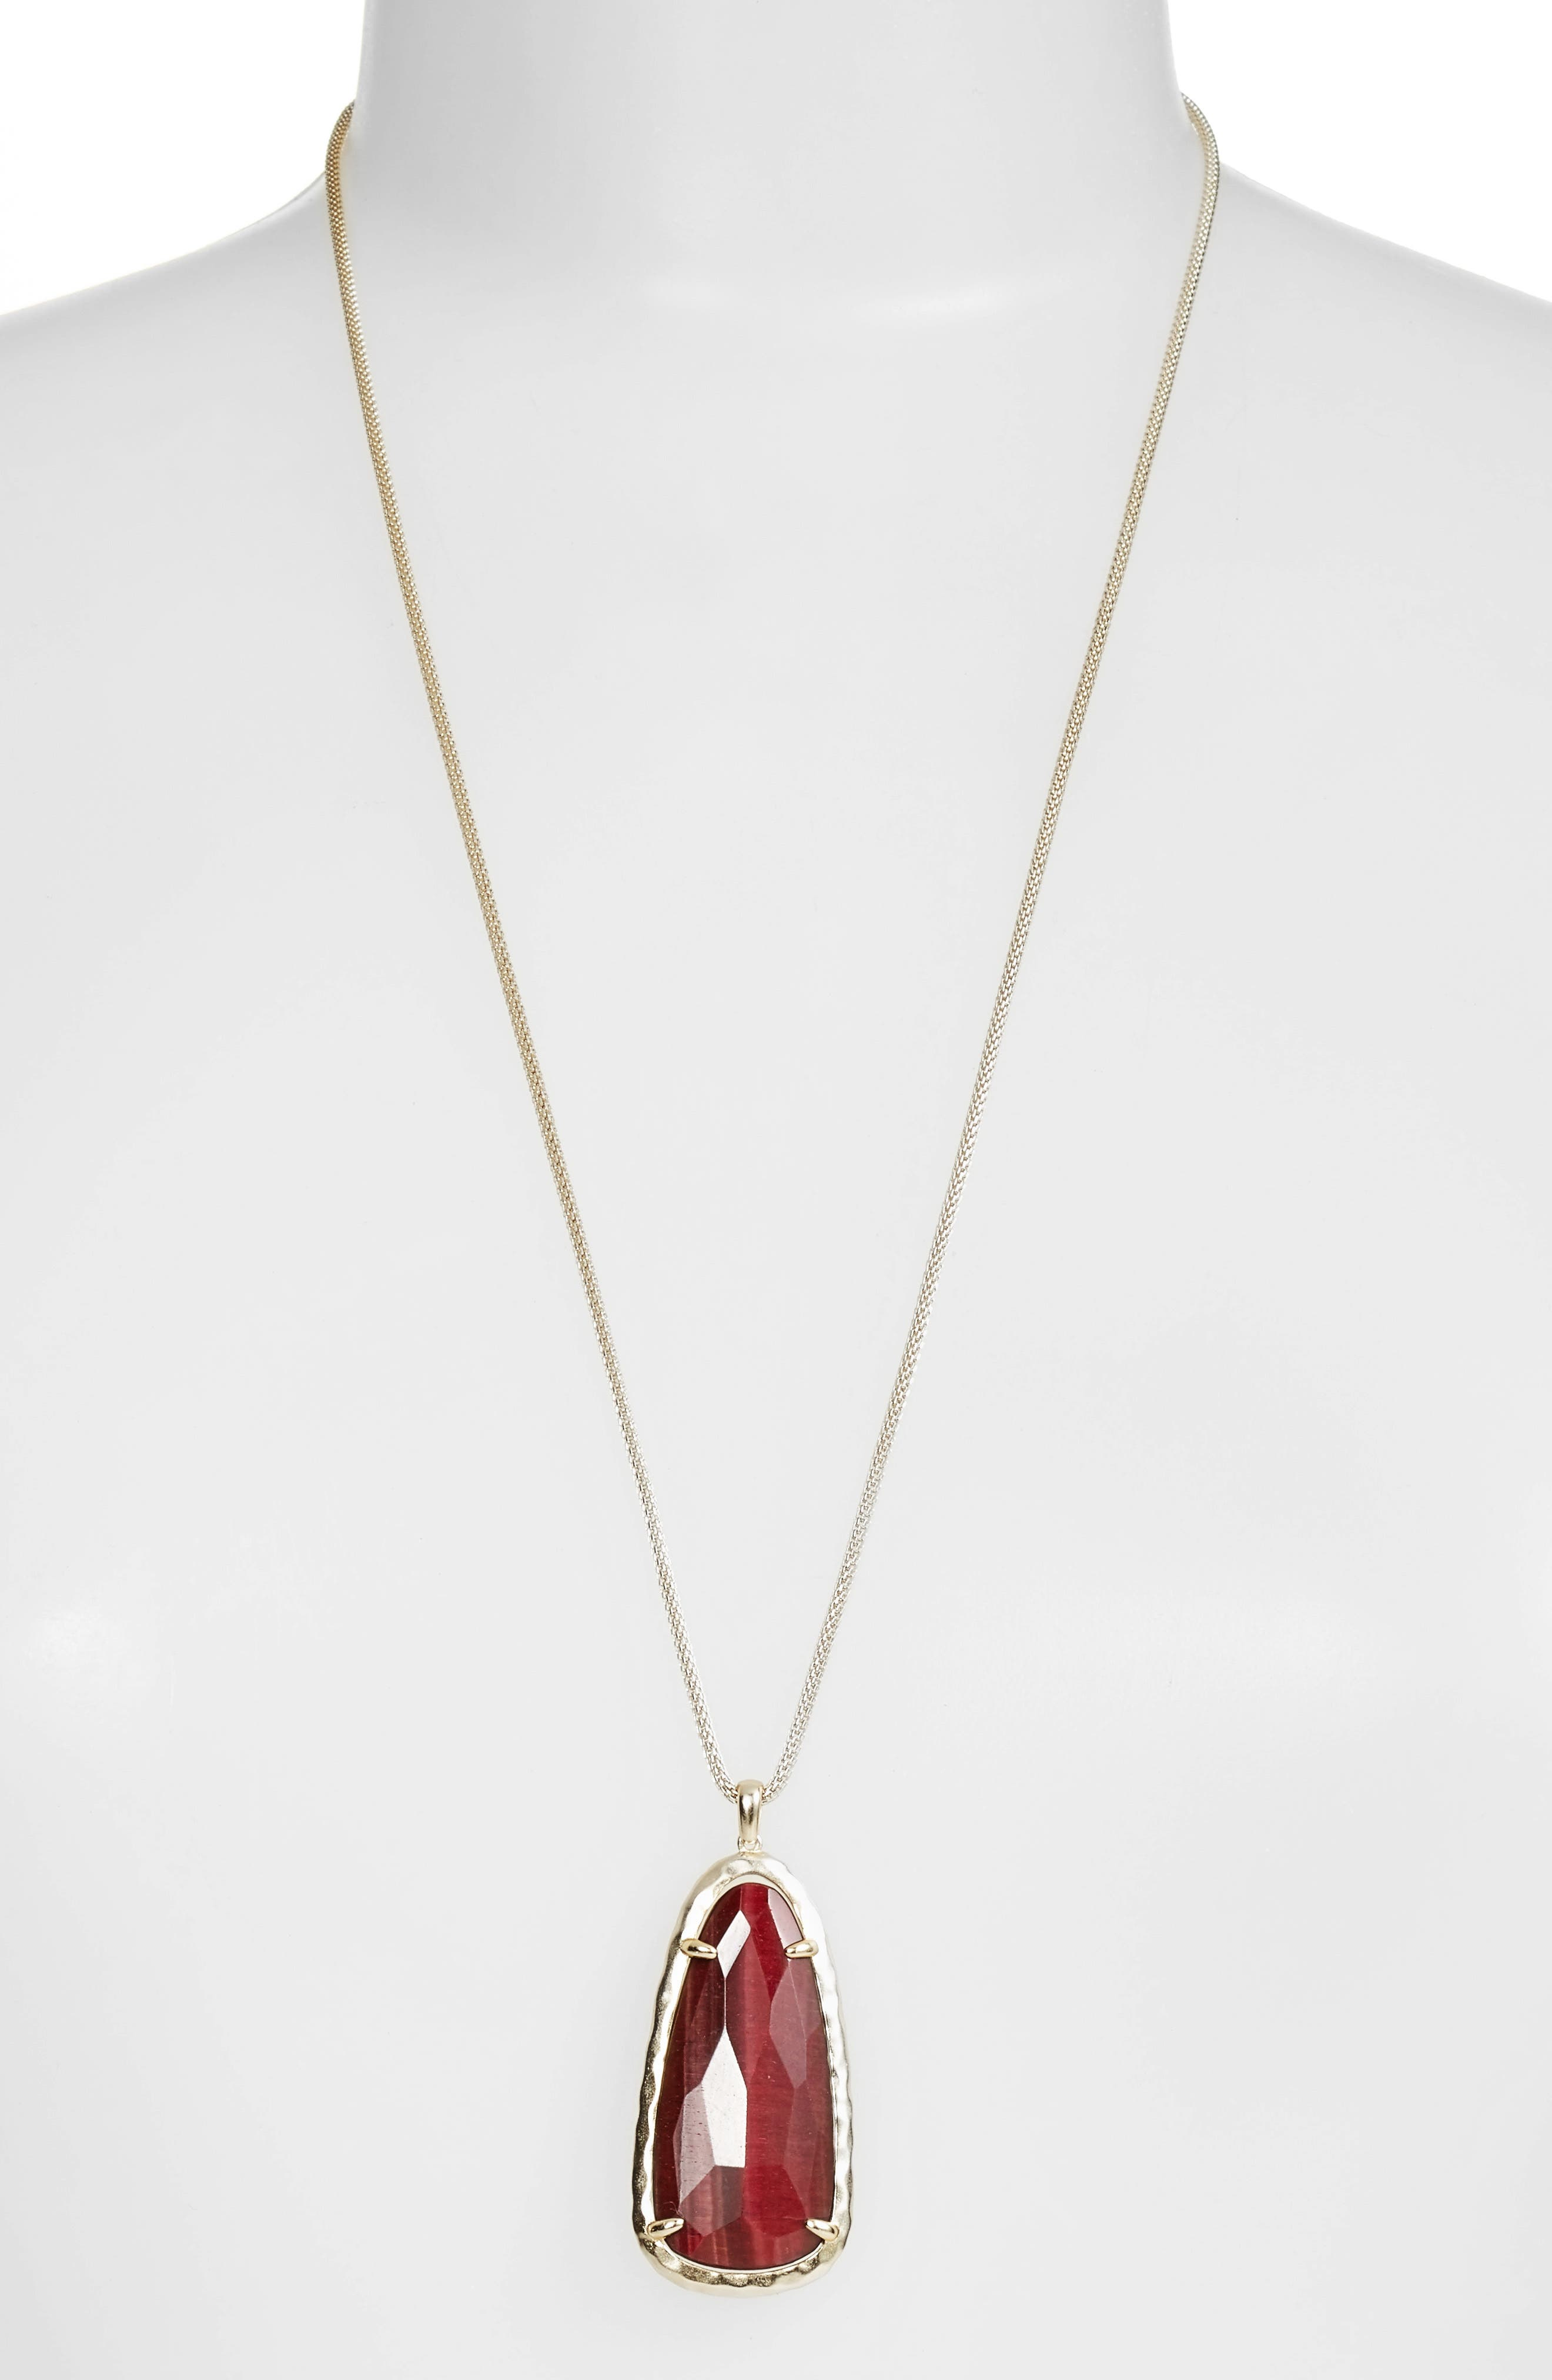 Alternate Image 1 Selected - Kendra Scott Saylor Pendant Necklace